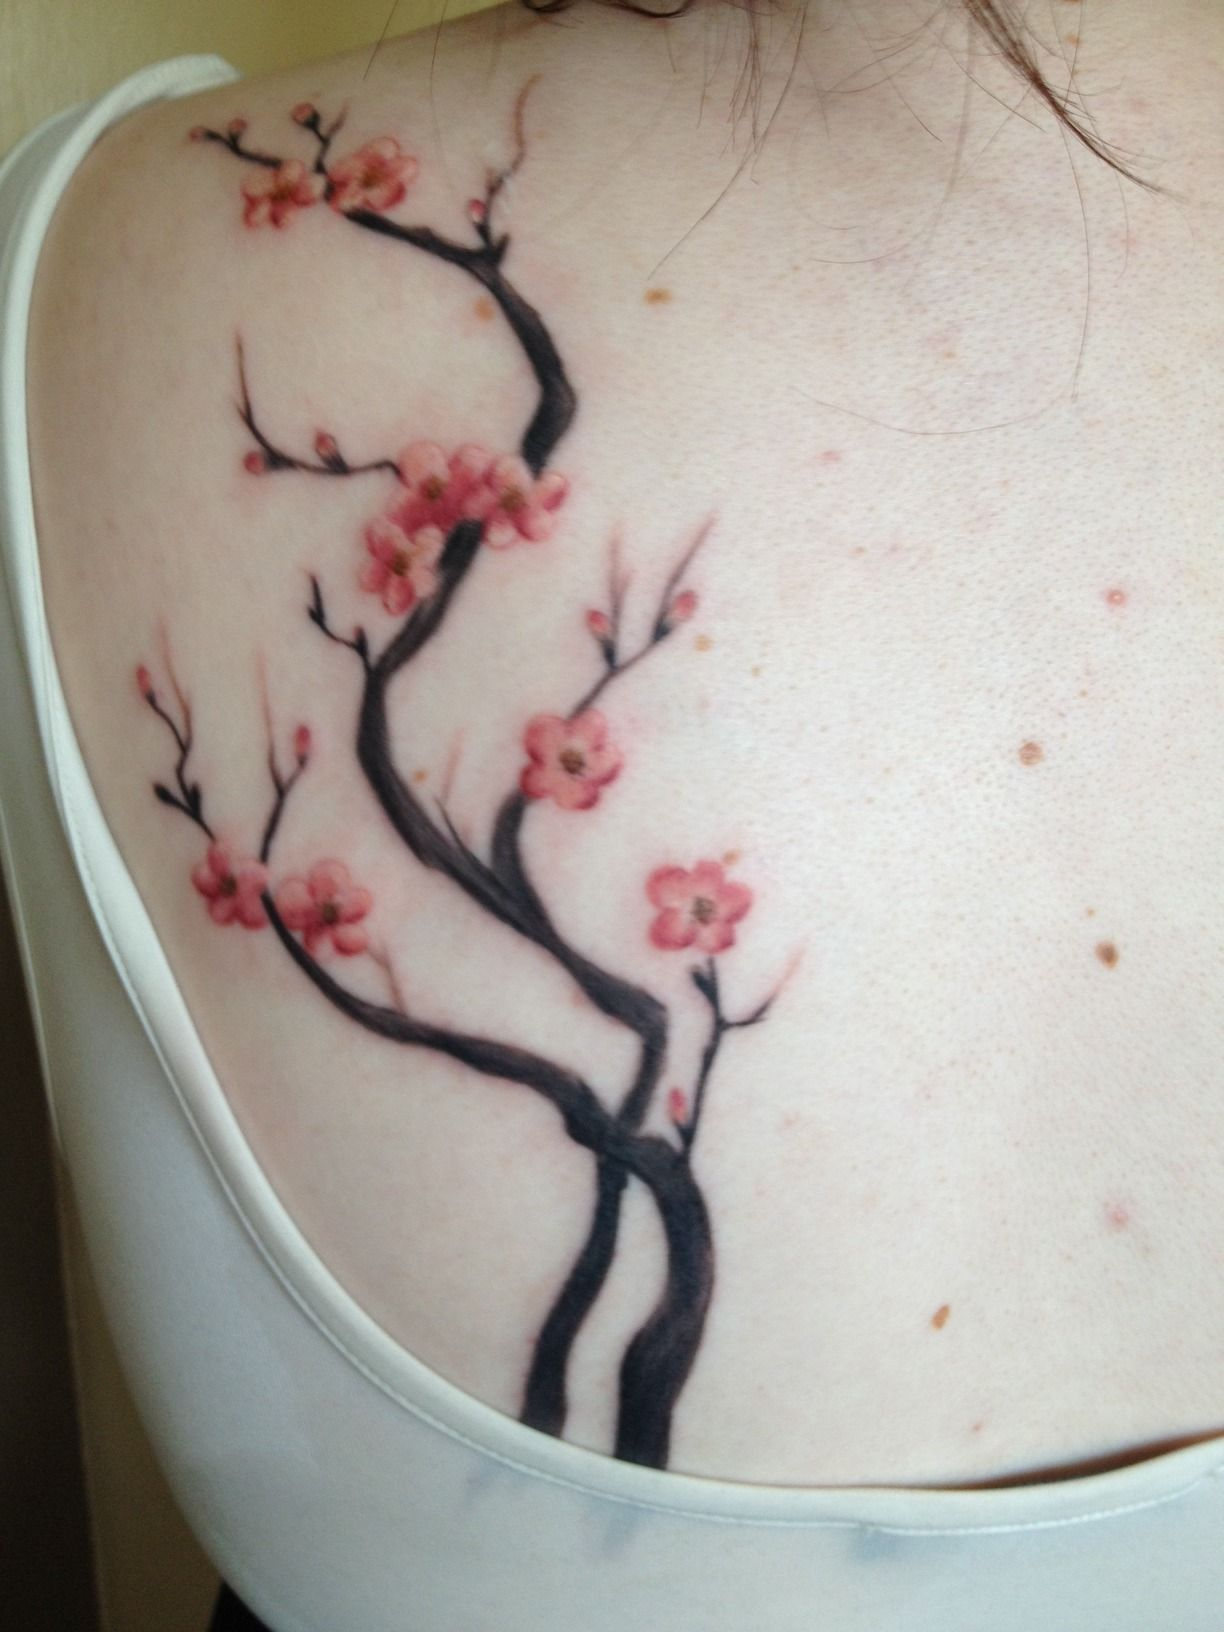 ed766272143c2 This is my cherry blossom branch tattoo that I got today. Over the summer I  became very ill out of nowhere and have mostly been unable to leave the  house ...